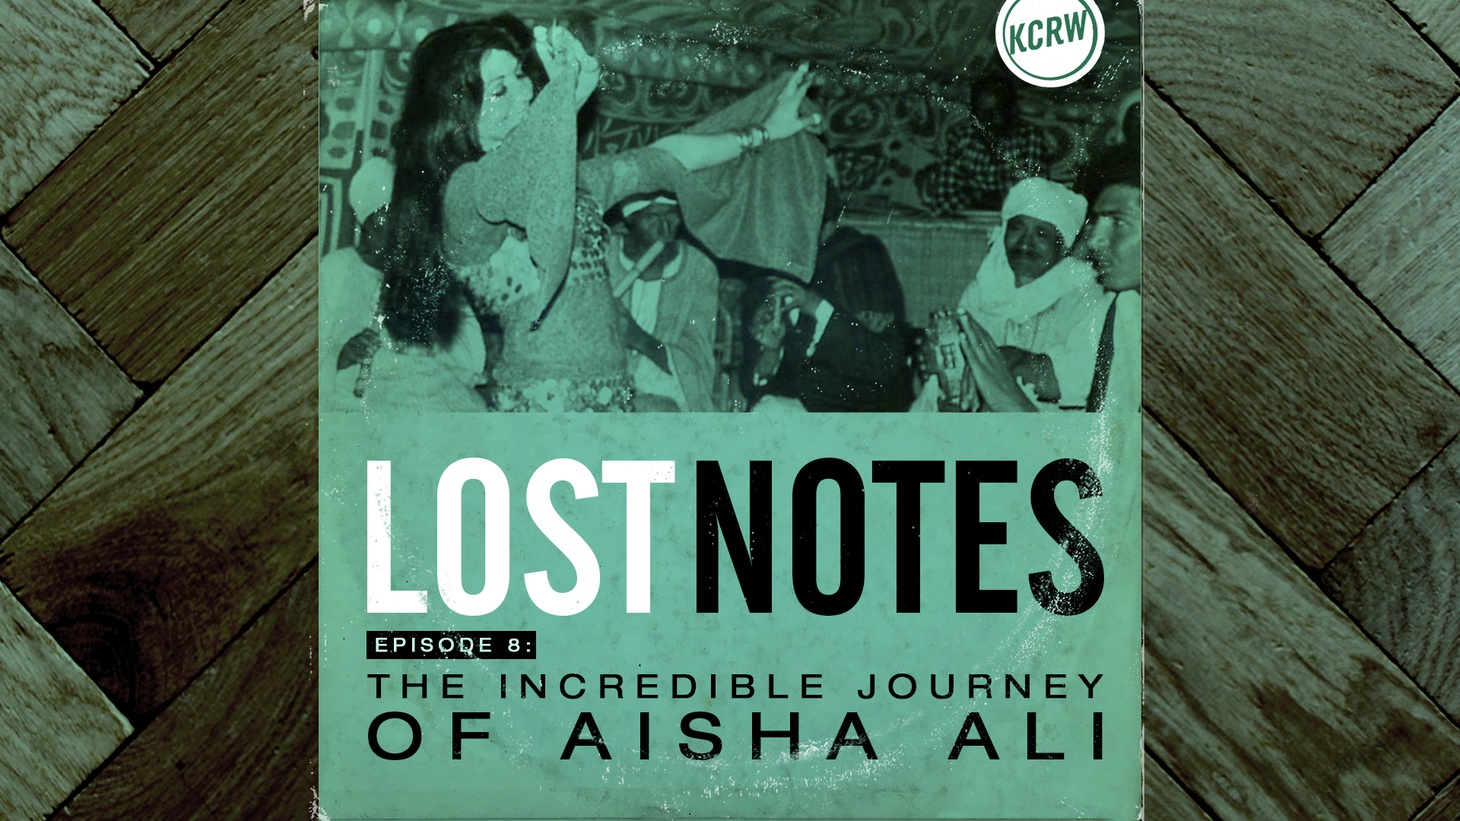 In the wake of the swinging '60s, a young woman named Aisha Ali travels to North Africa in search of her roots. There, she single-handedly documents hours and hours of music and film from Algeria, Libya, Tunisia, Morocco, and Egypt ...